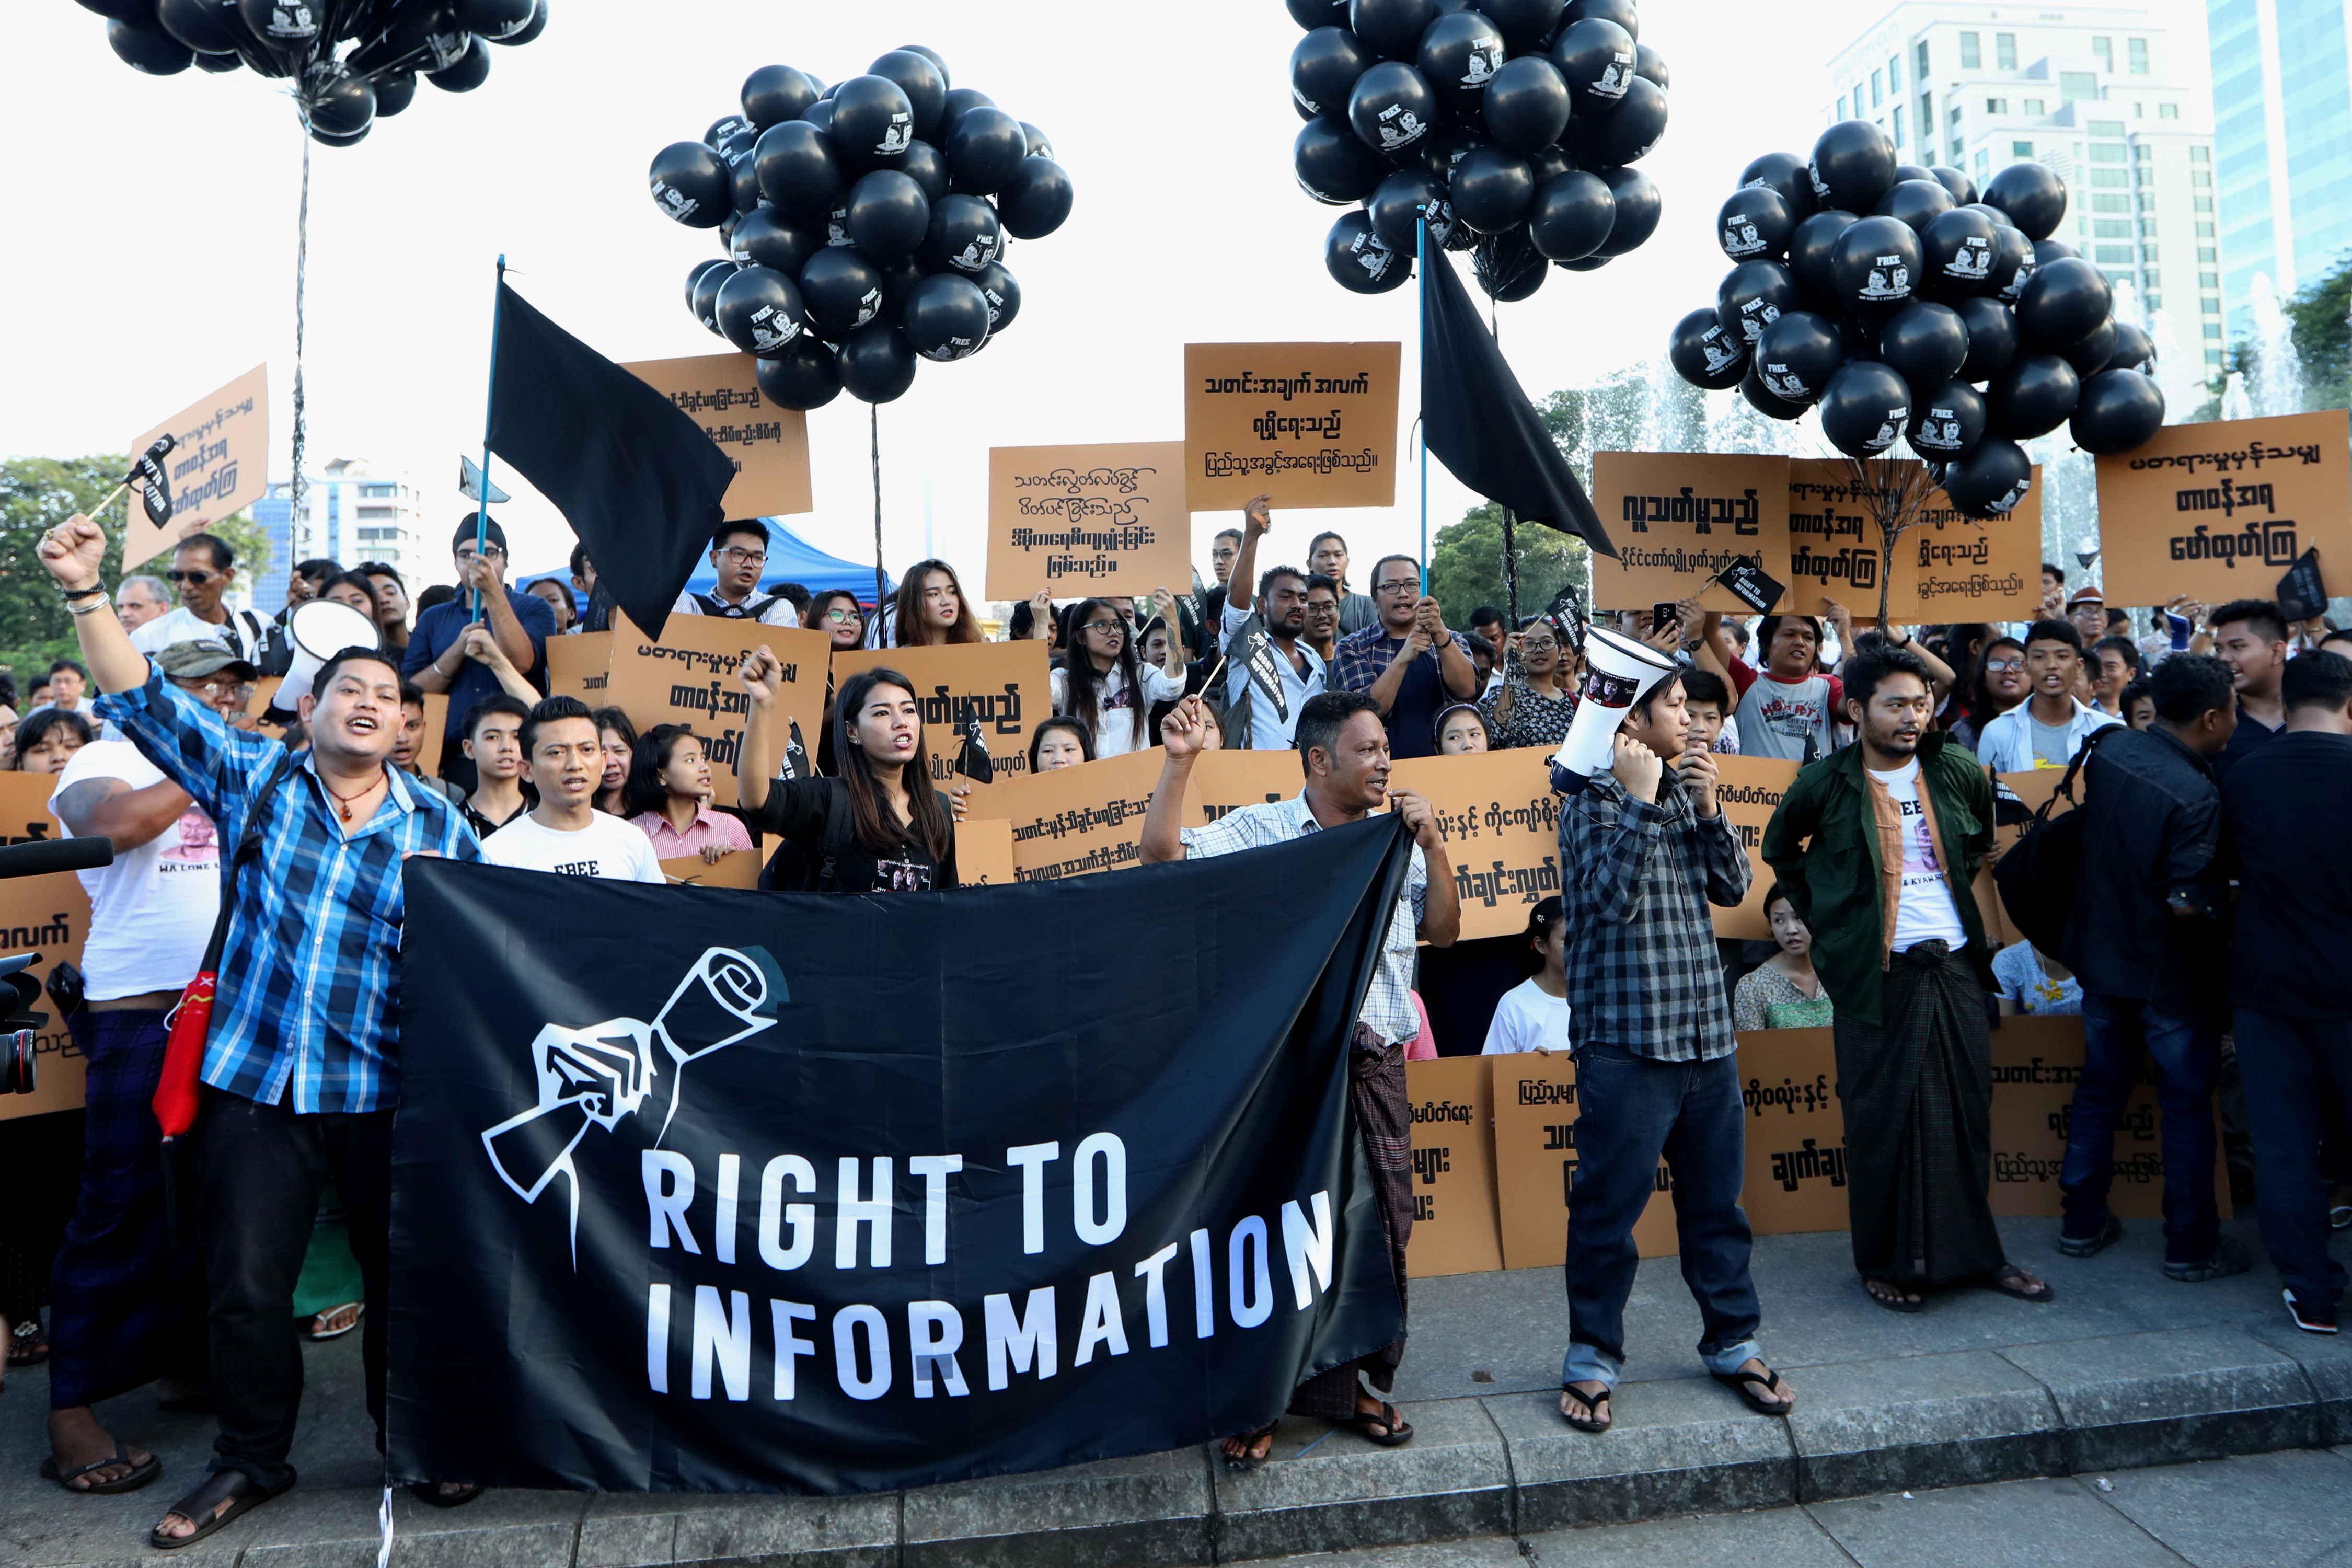 Myanmar press freedom advocates and youth activists hold a demonstration demanding the freedom of two jailed Reuters journalists Wa Lone and Kyaw Soe Oo in Yangon, Myanmar, Sept. 16, 2018.